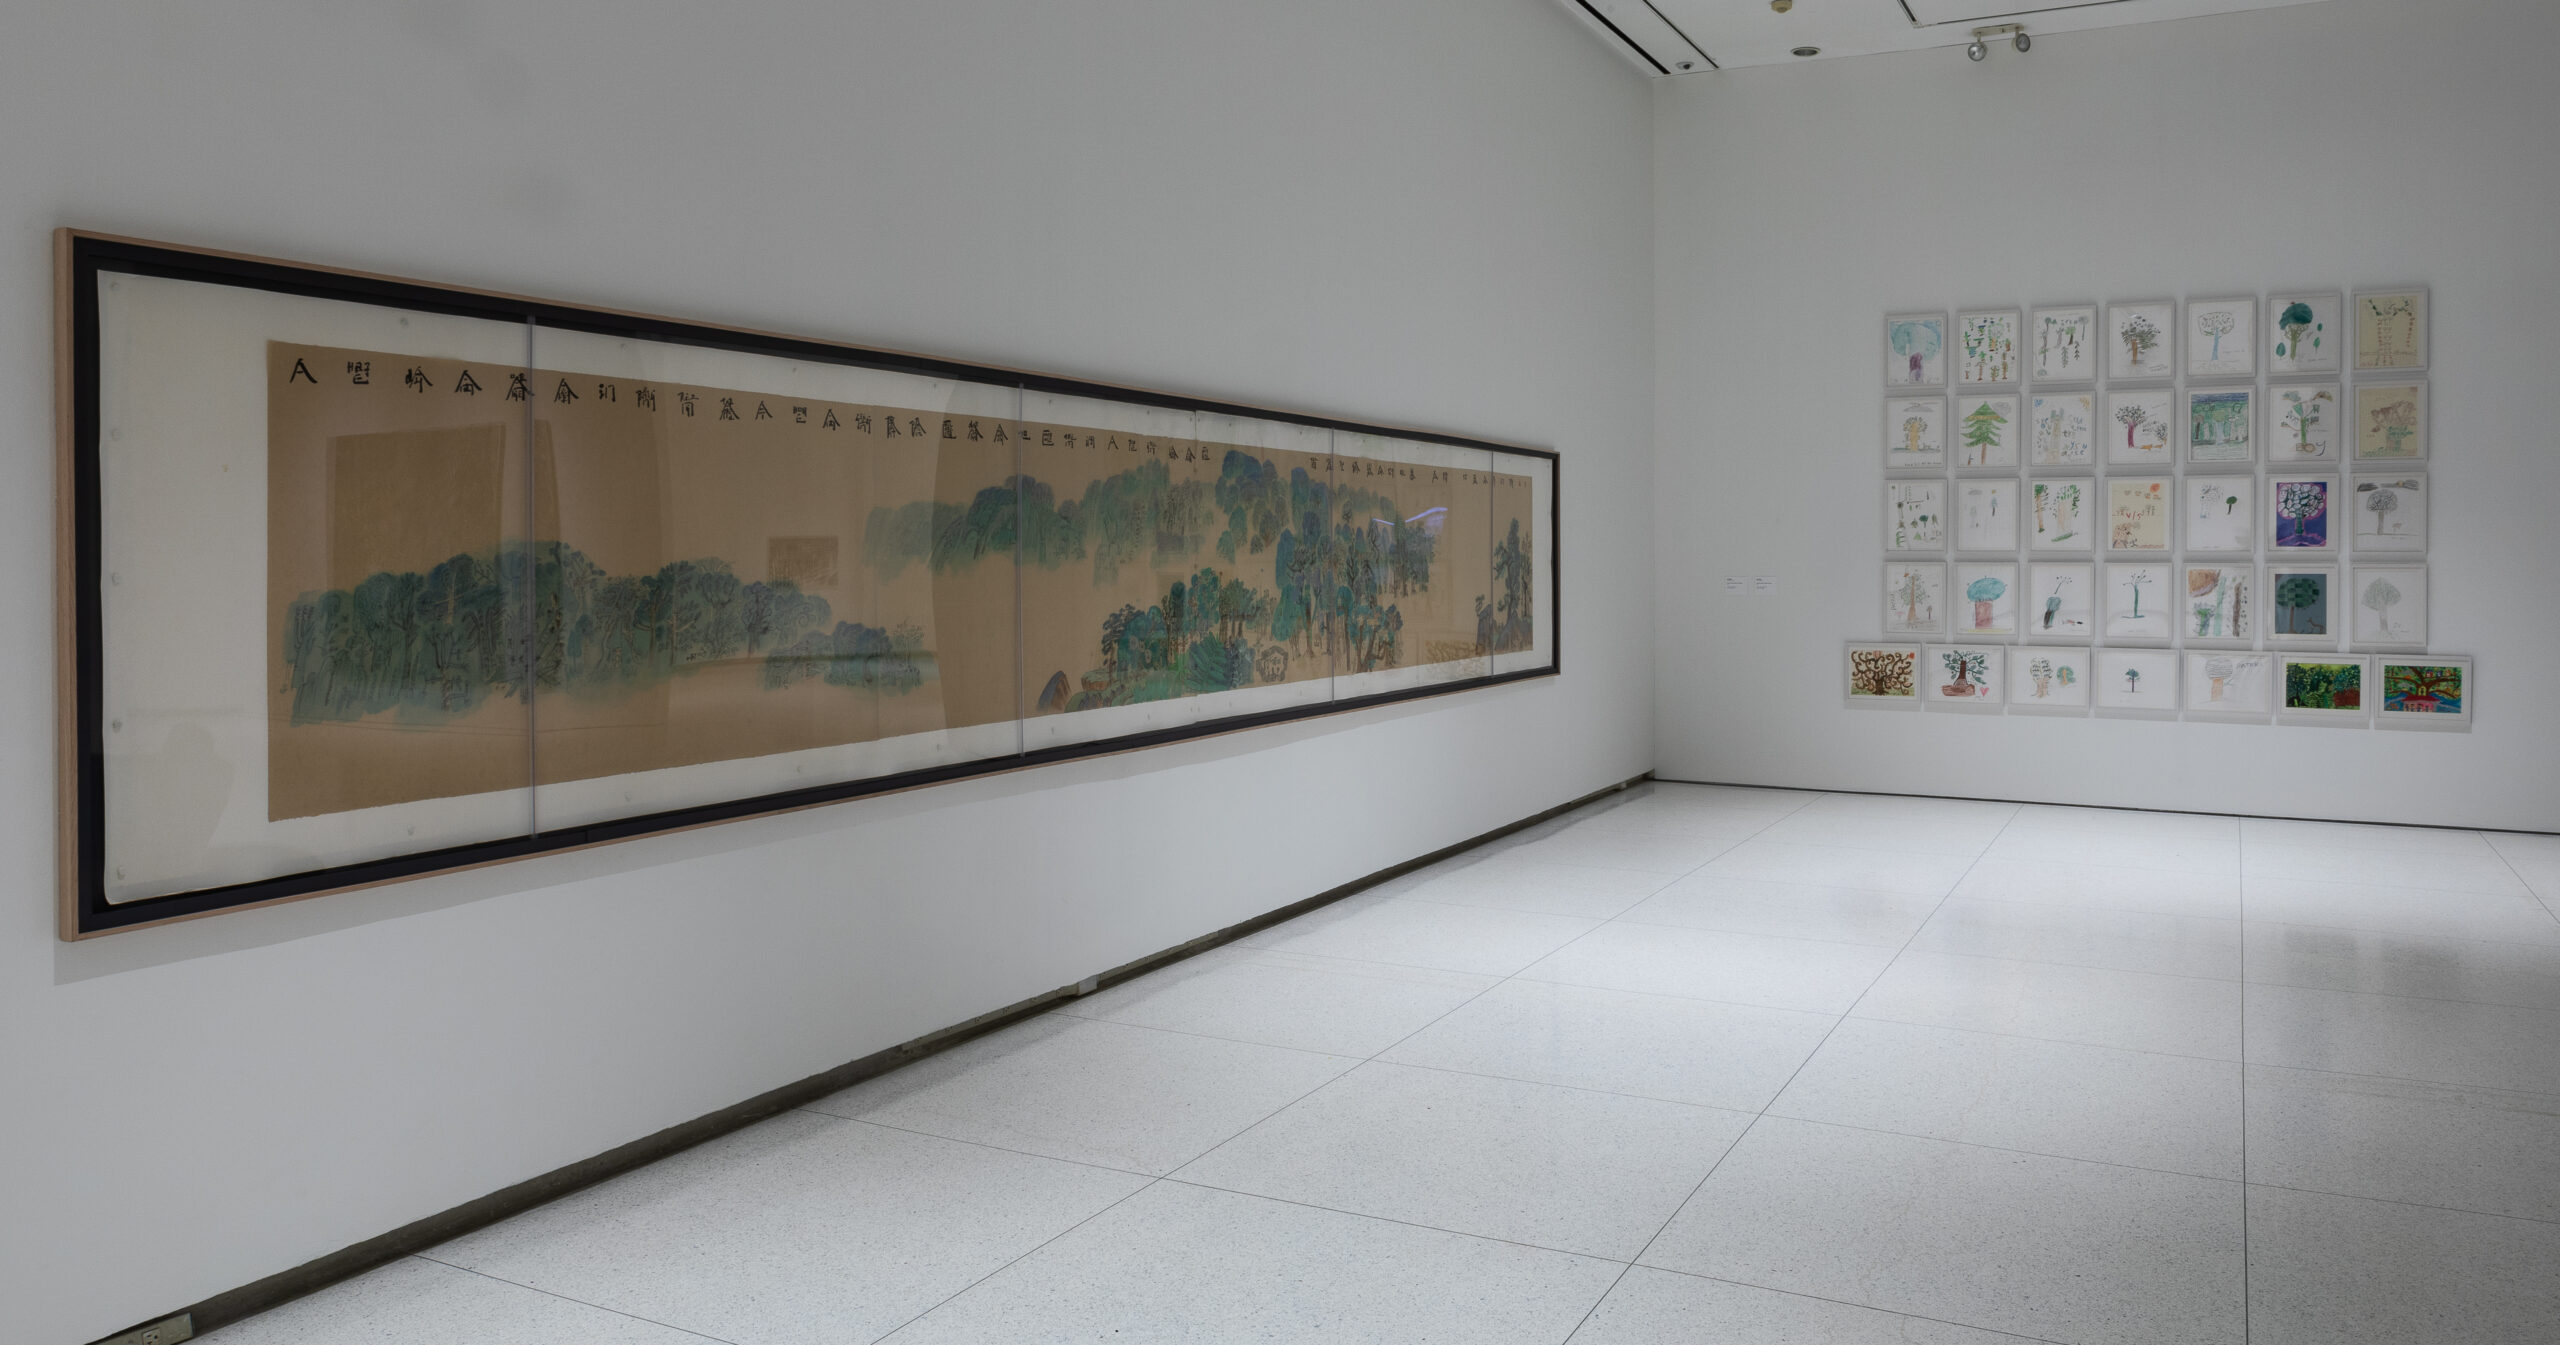 Gallery installation with framed children's drawings and a long scroll landscape painting.